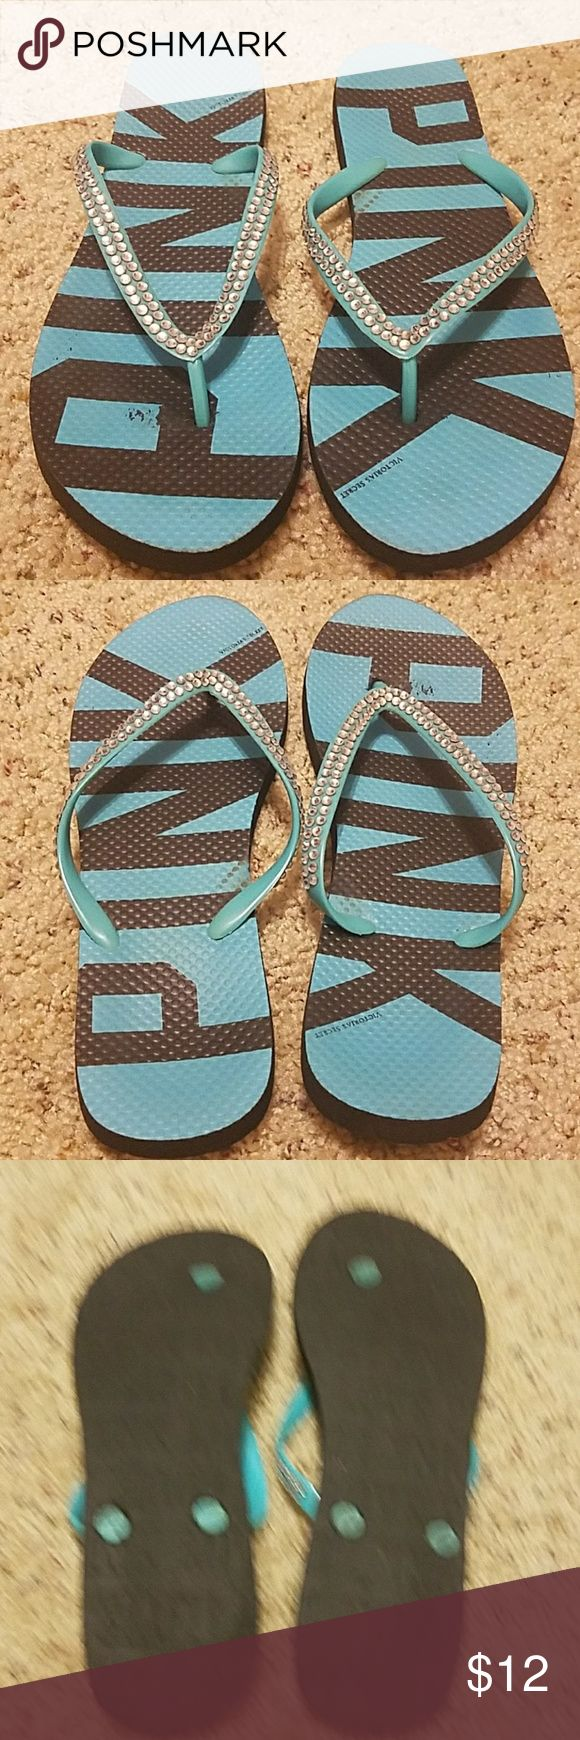 VS Pink Bling Flip Flops Super cute VS Pink flip flops. Black and turquoise with silver rhinestones. No stones are missing. Only wore once. Size small, fits 5/6. PINK Victoria's Secret Shoes